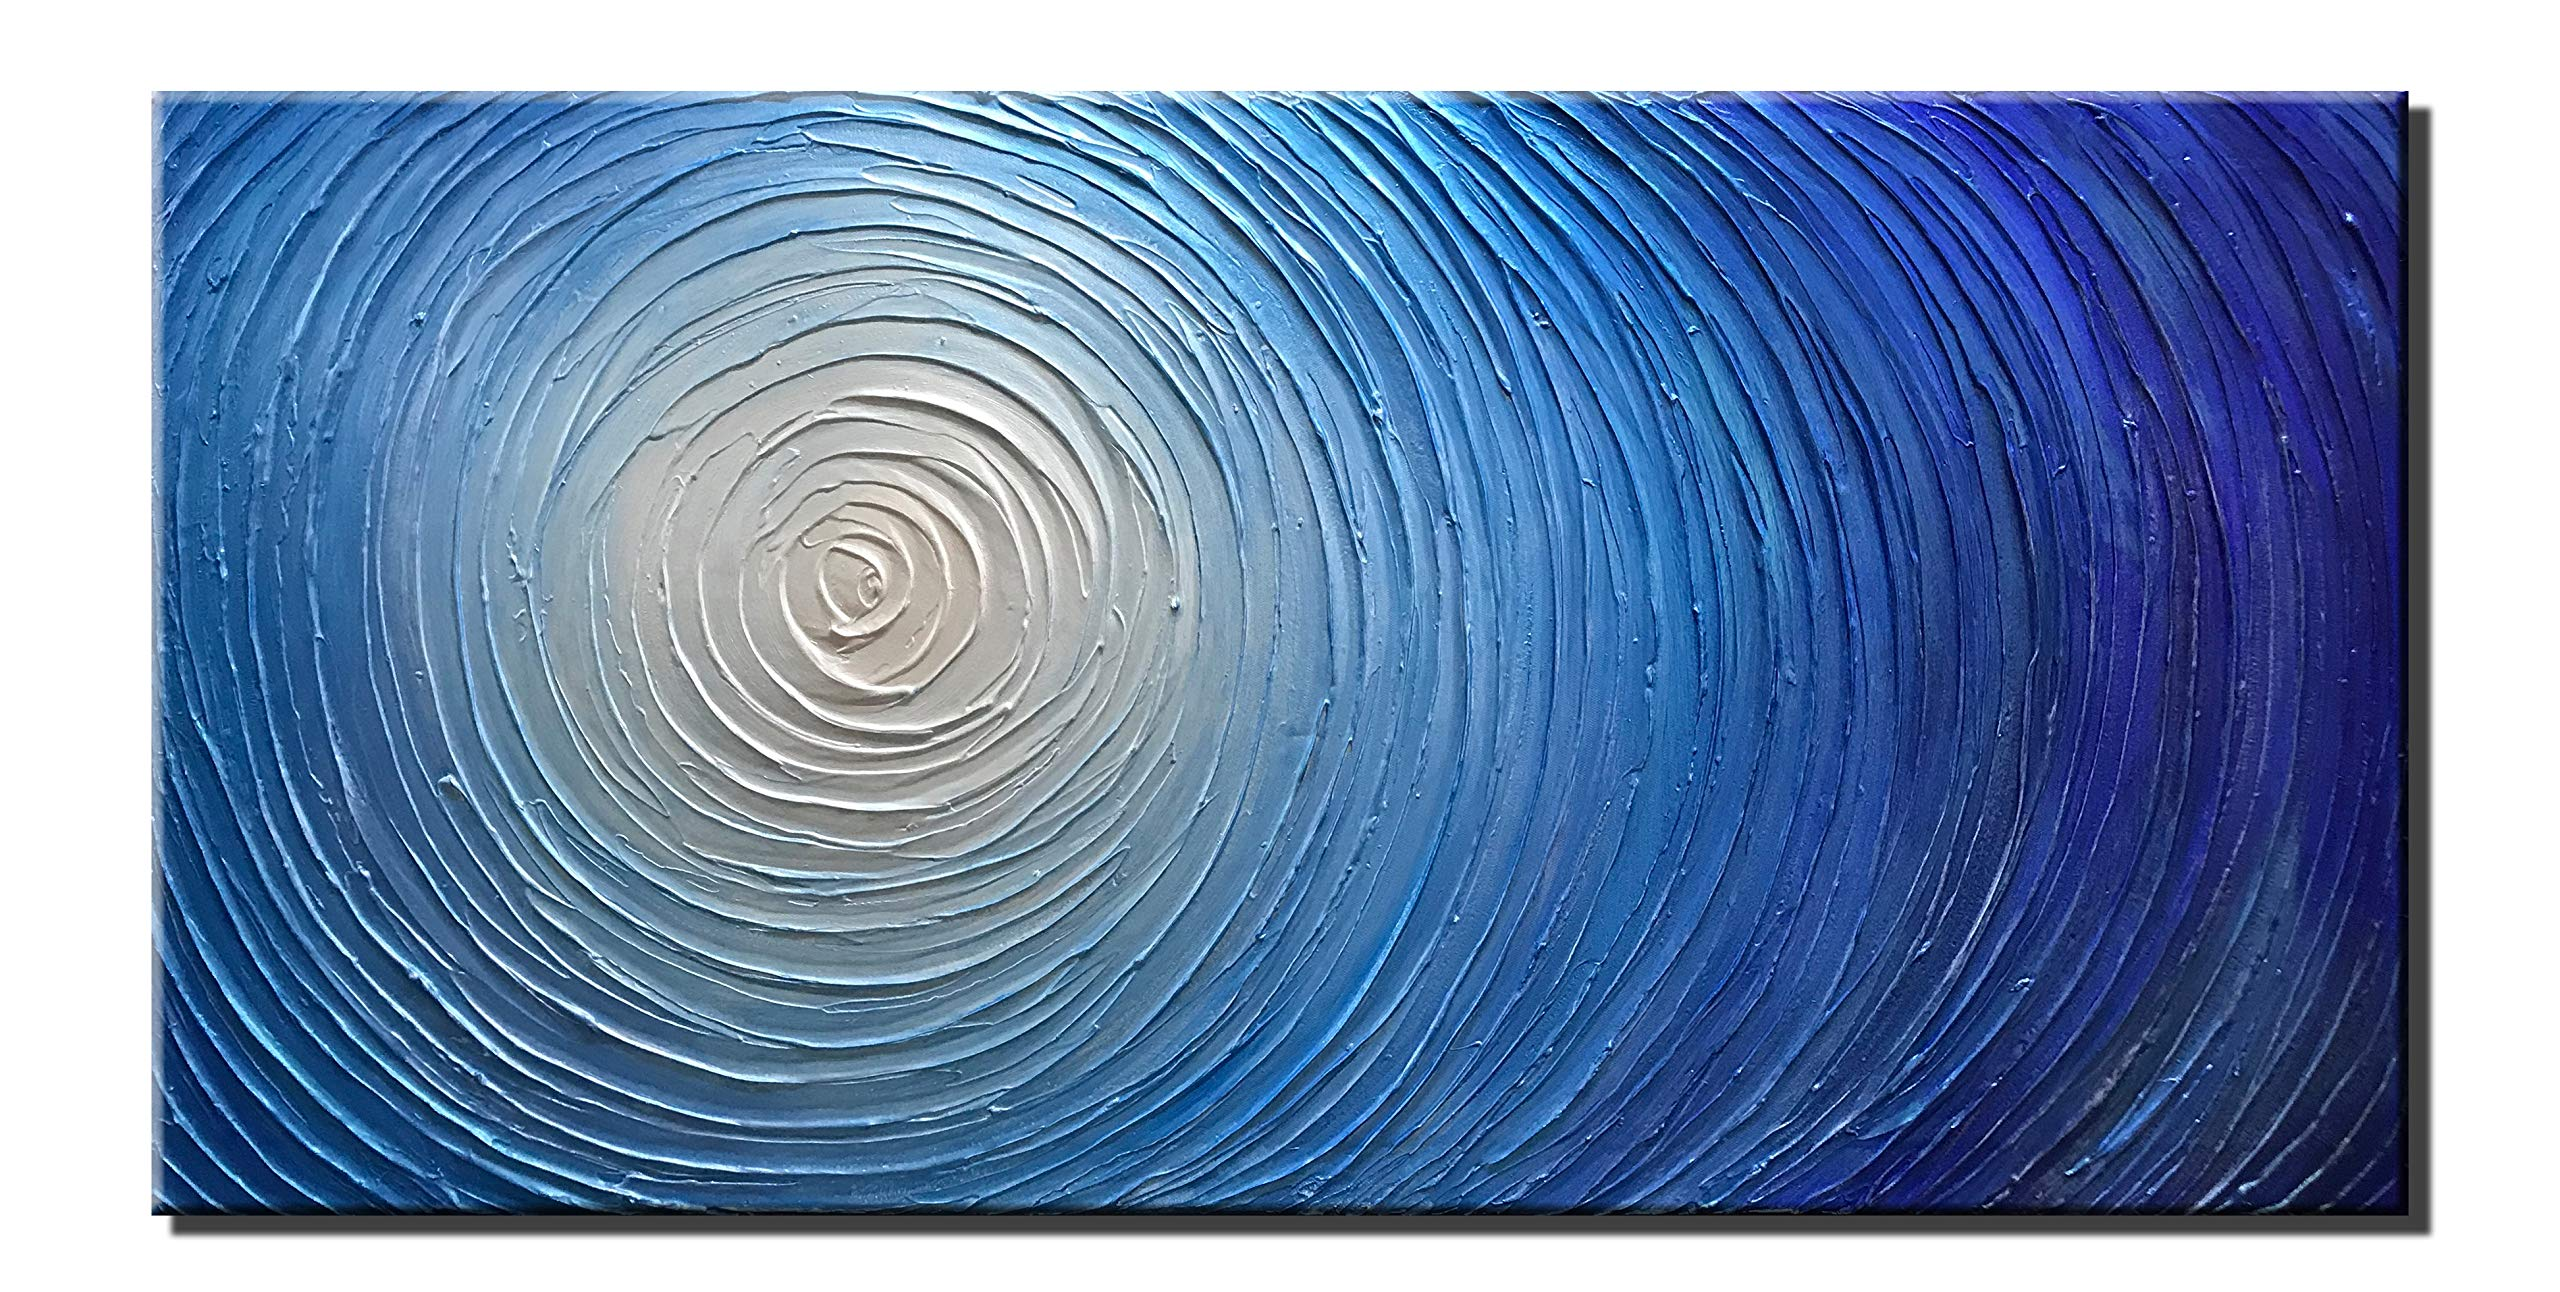 Diathou 20x40Inch Oil Painting Blue Abstract Artworks Unique Texture 100% Hand-Painted Painting Oil Painting Decoration of Modern Home Abstract Art Works